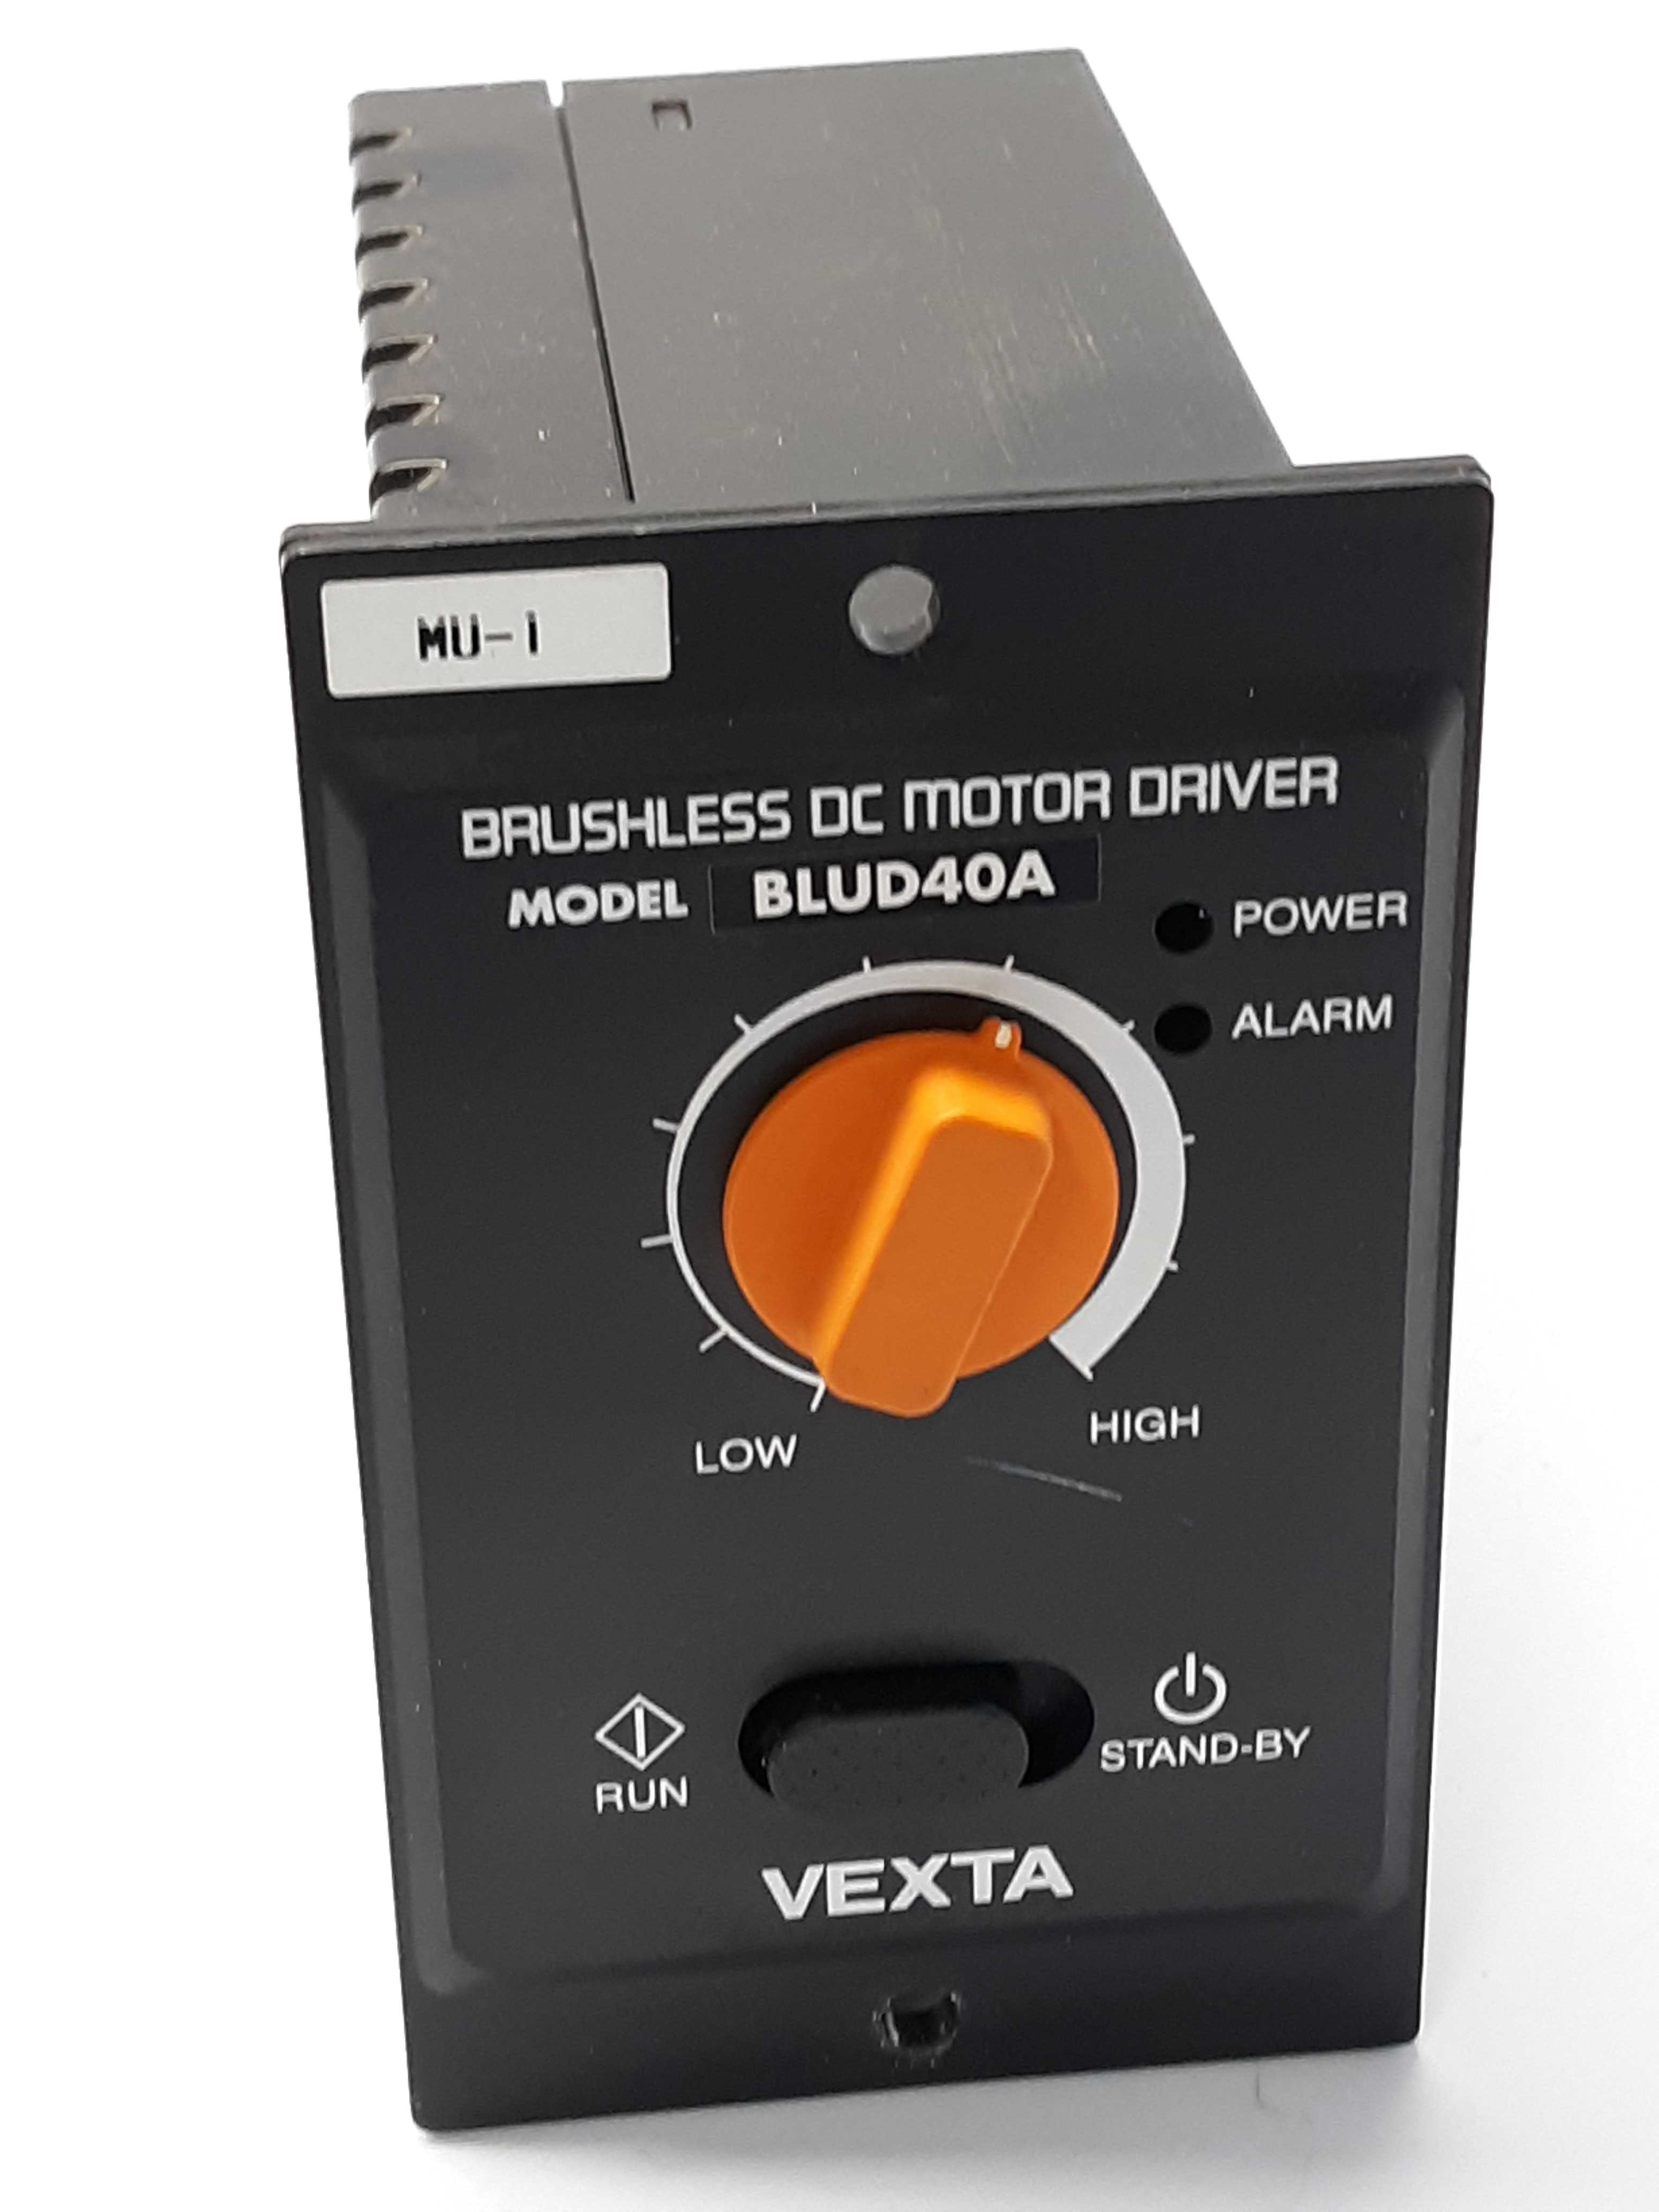 Vexta BLUD40A Brushless DC Motor Driver